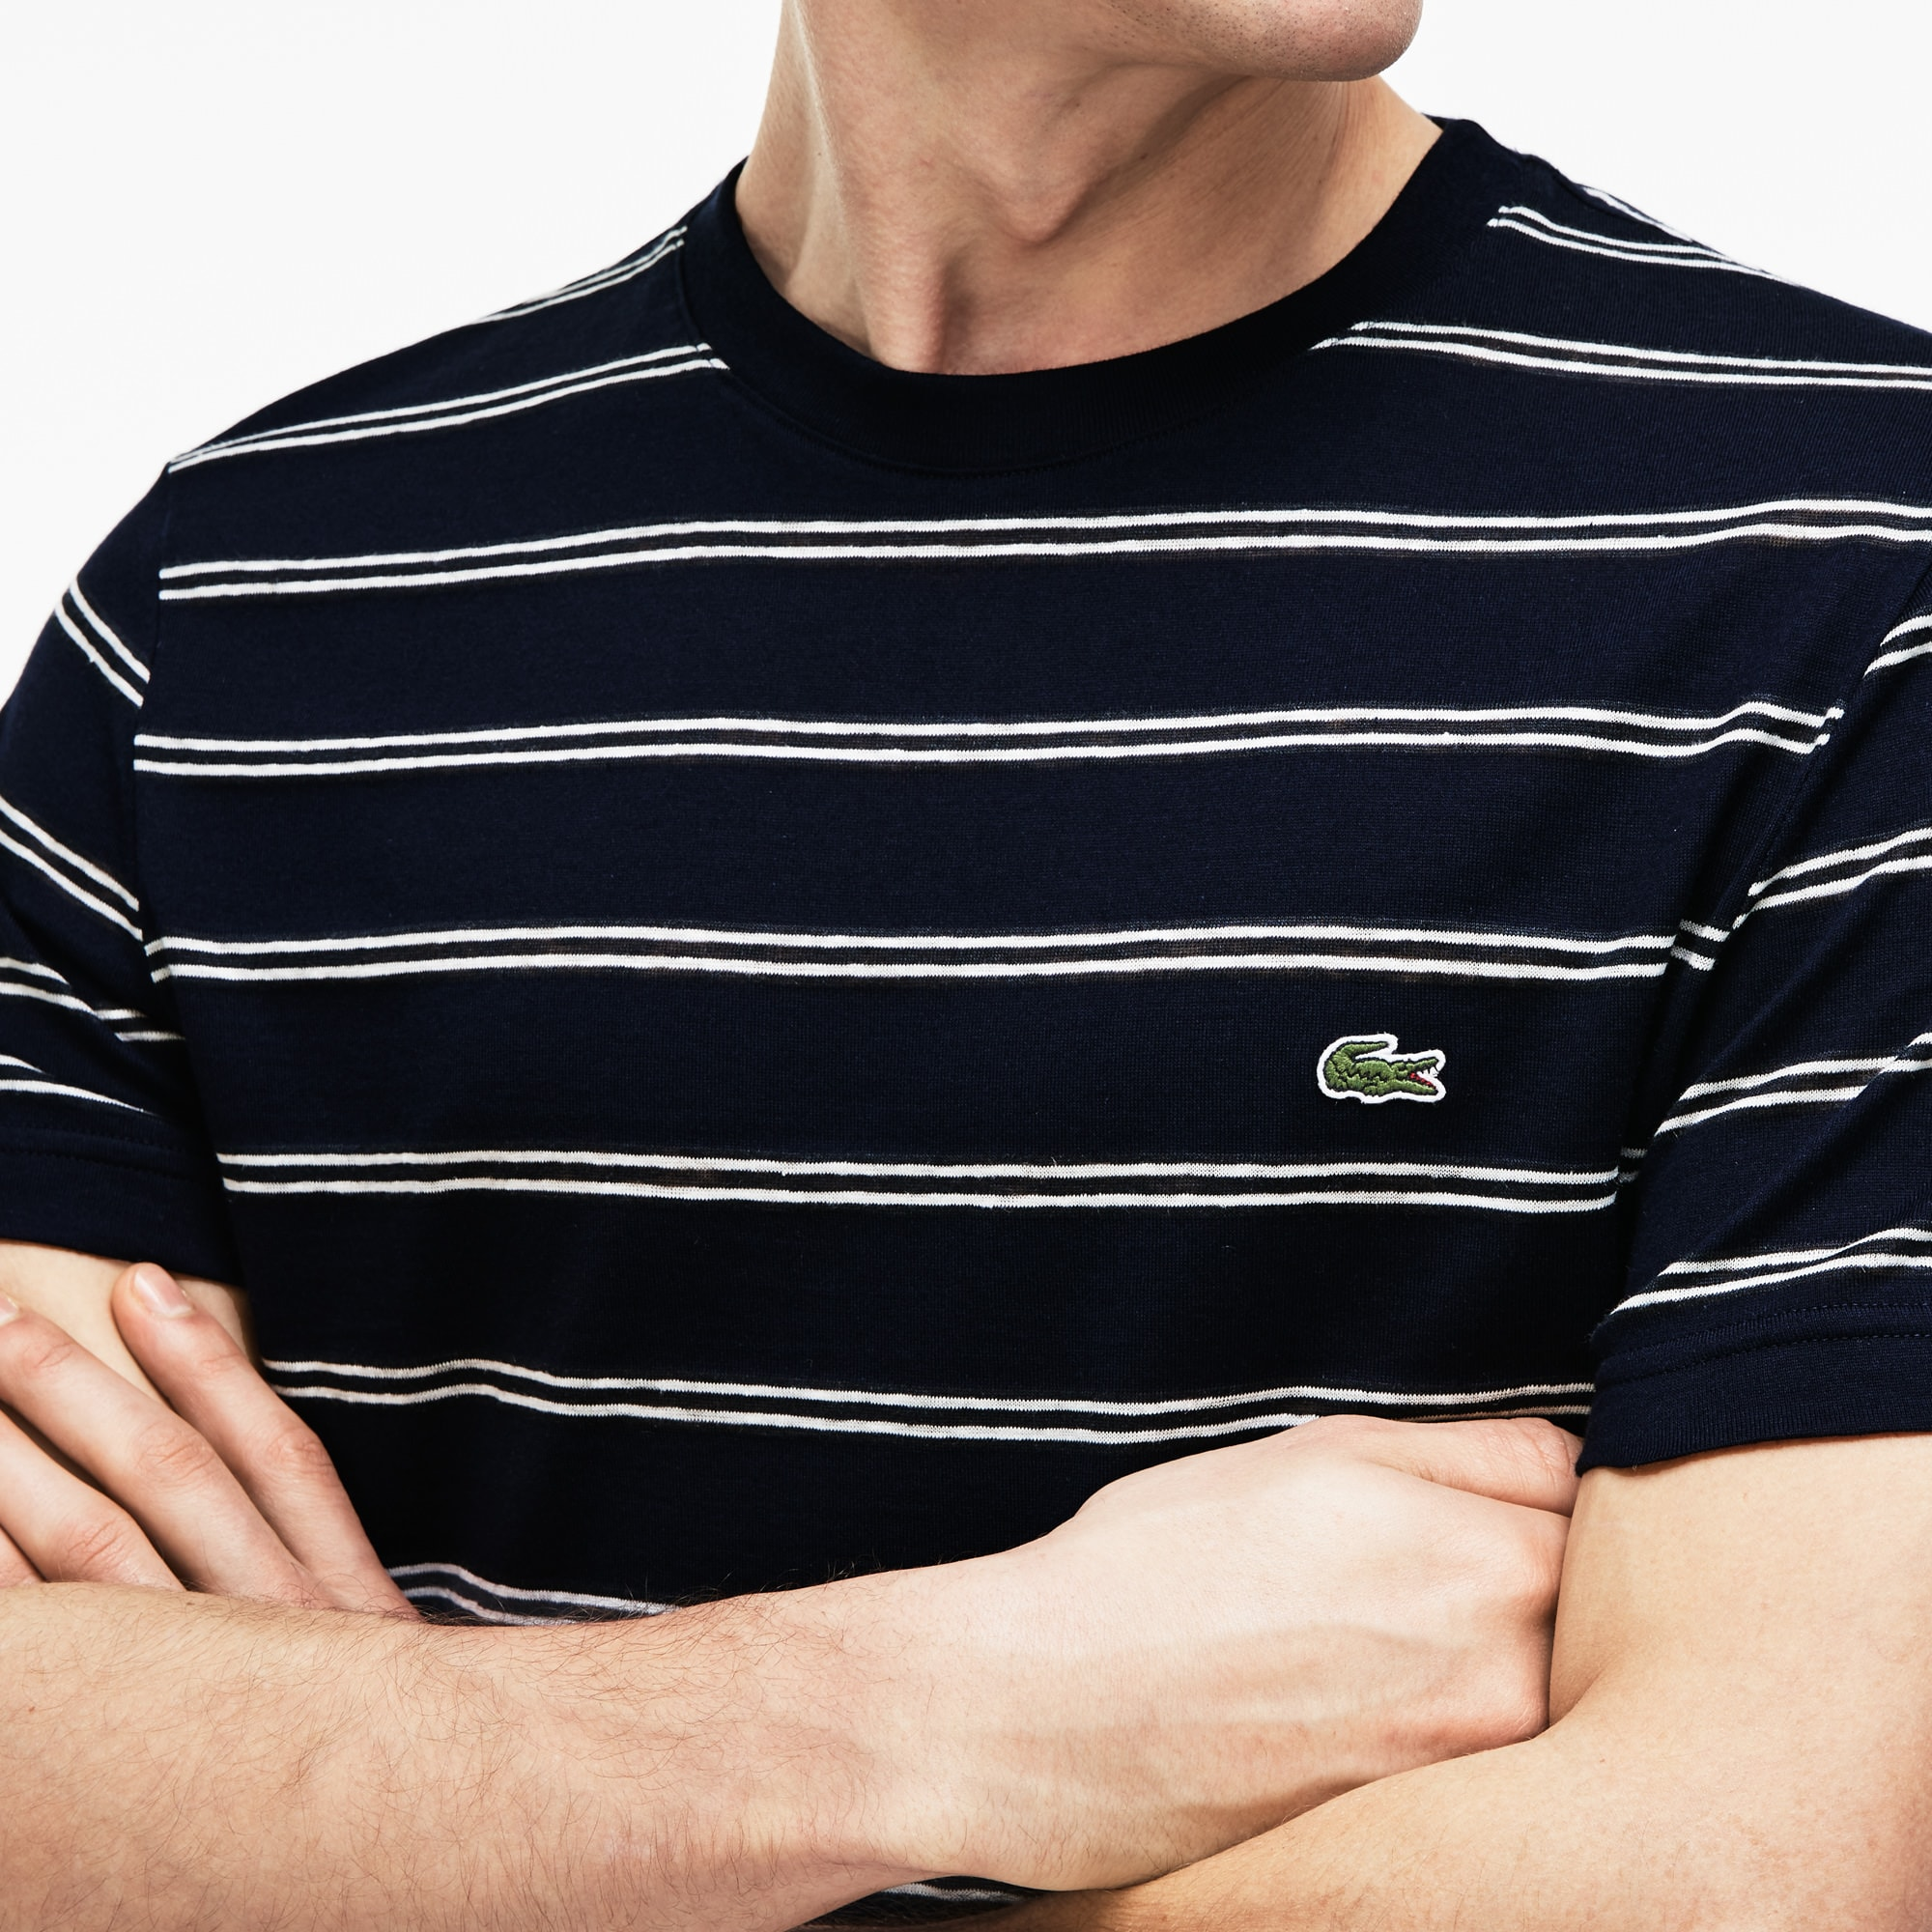 Men's Striped Cotton And Linen T-Shirt